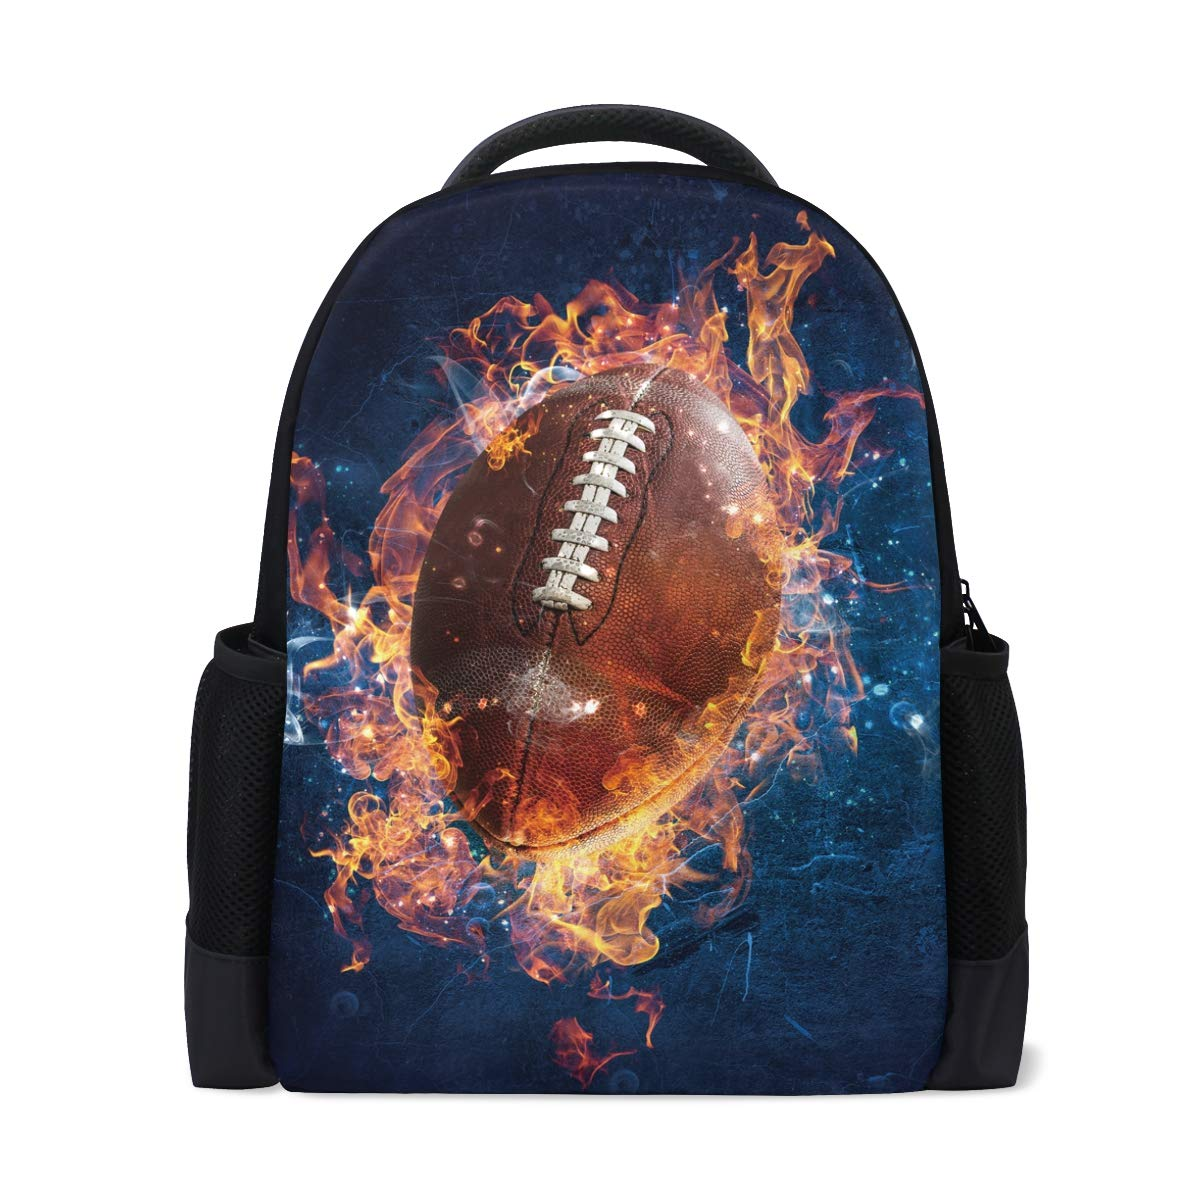 45c28ce069 Amazon.com  Spirit of Flaming American Football Student Backpack ...